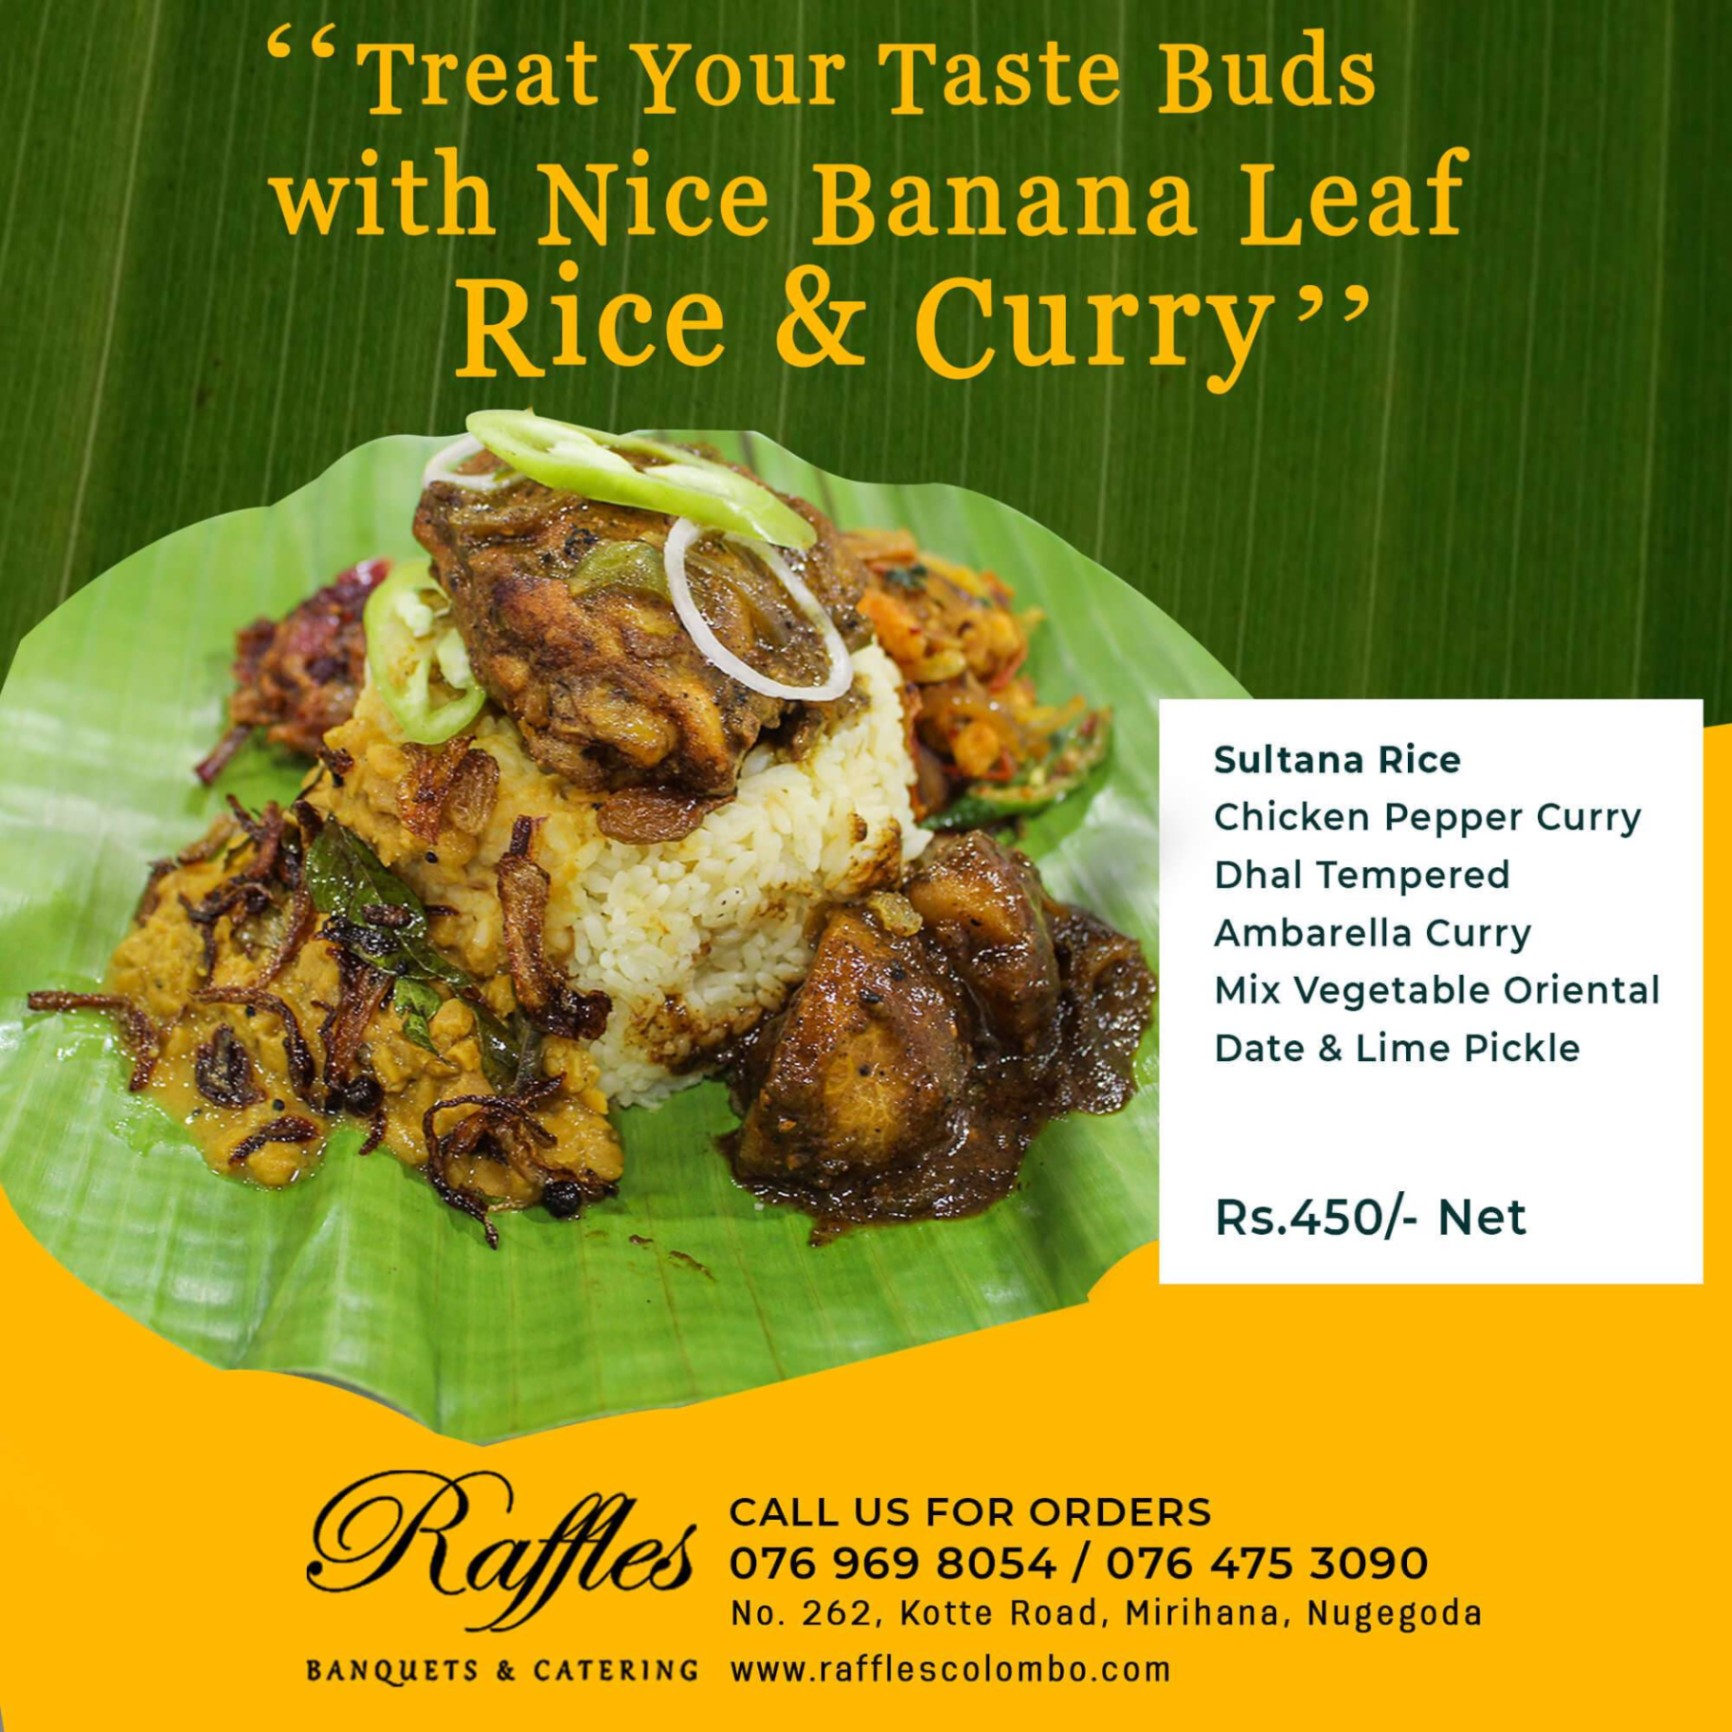 Treat Your Taste Buds with Nice Banana Leaf Rice & Curry!